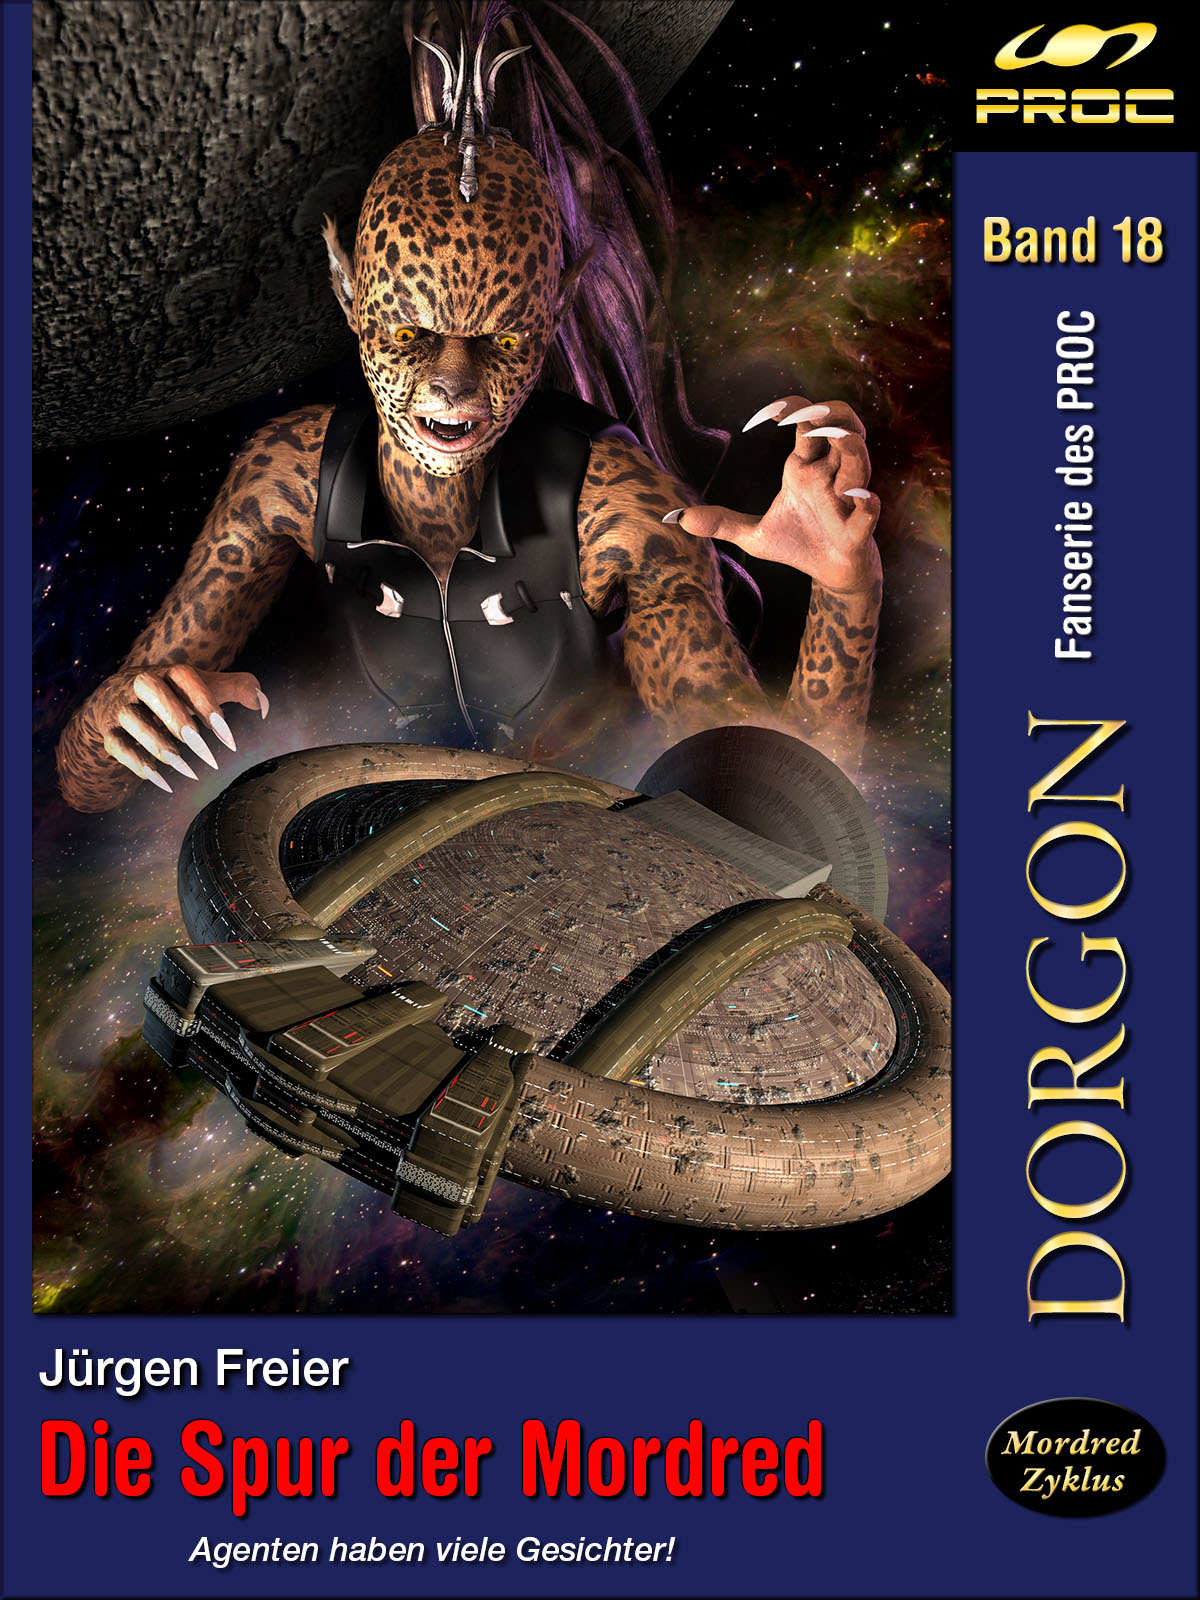 Dorgon Cover Band 18